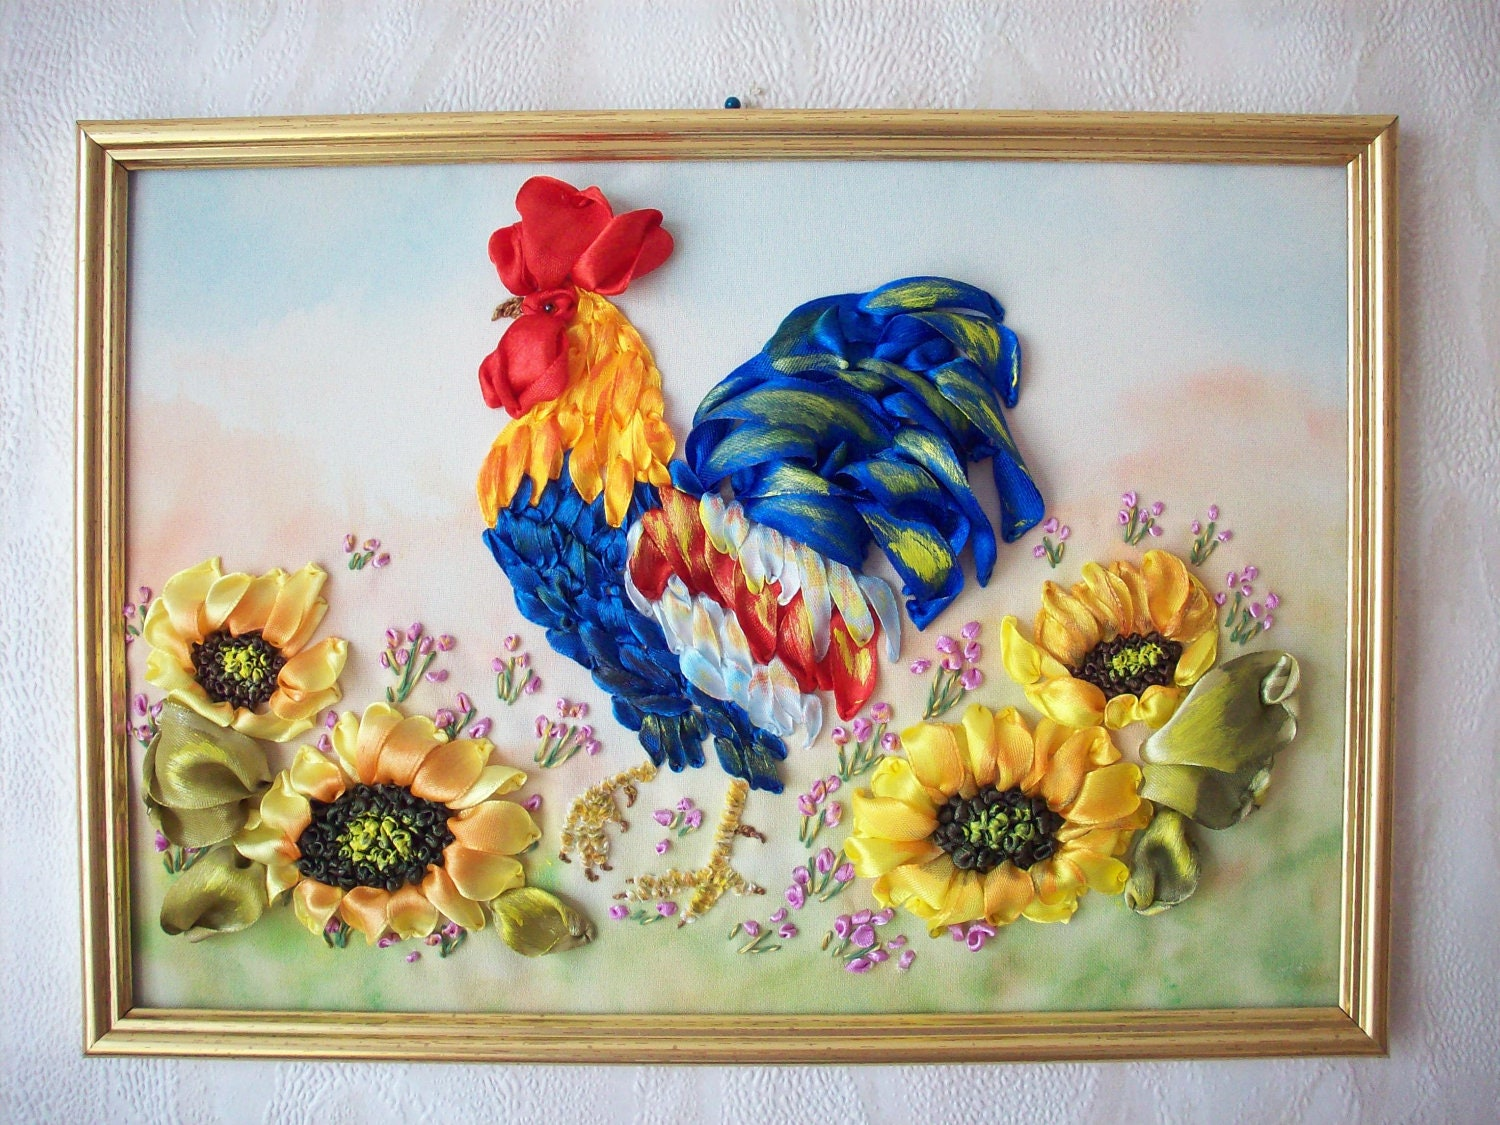 Picture rooster sunflowers wall decor kitchen by - Rooster wall decor kitchen ...